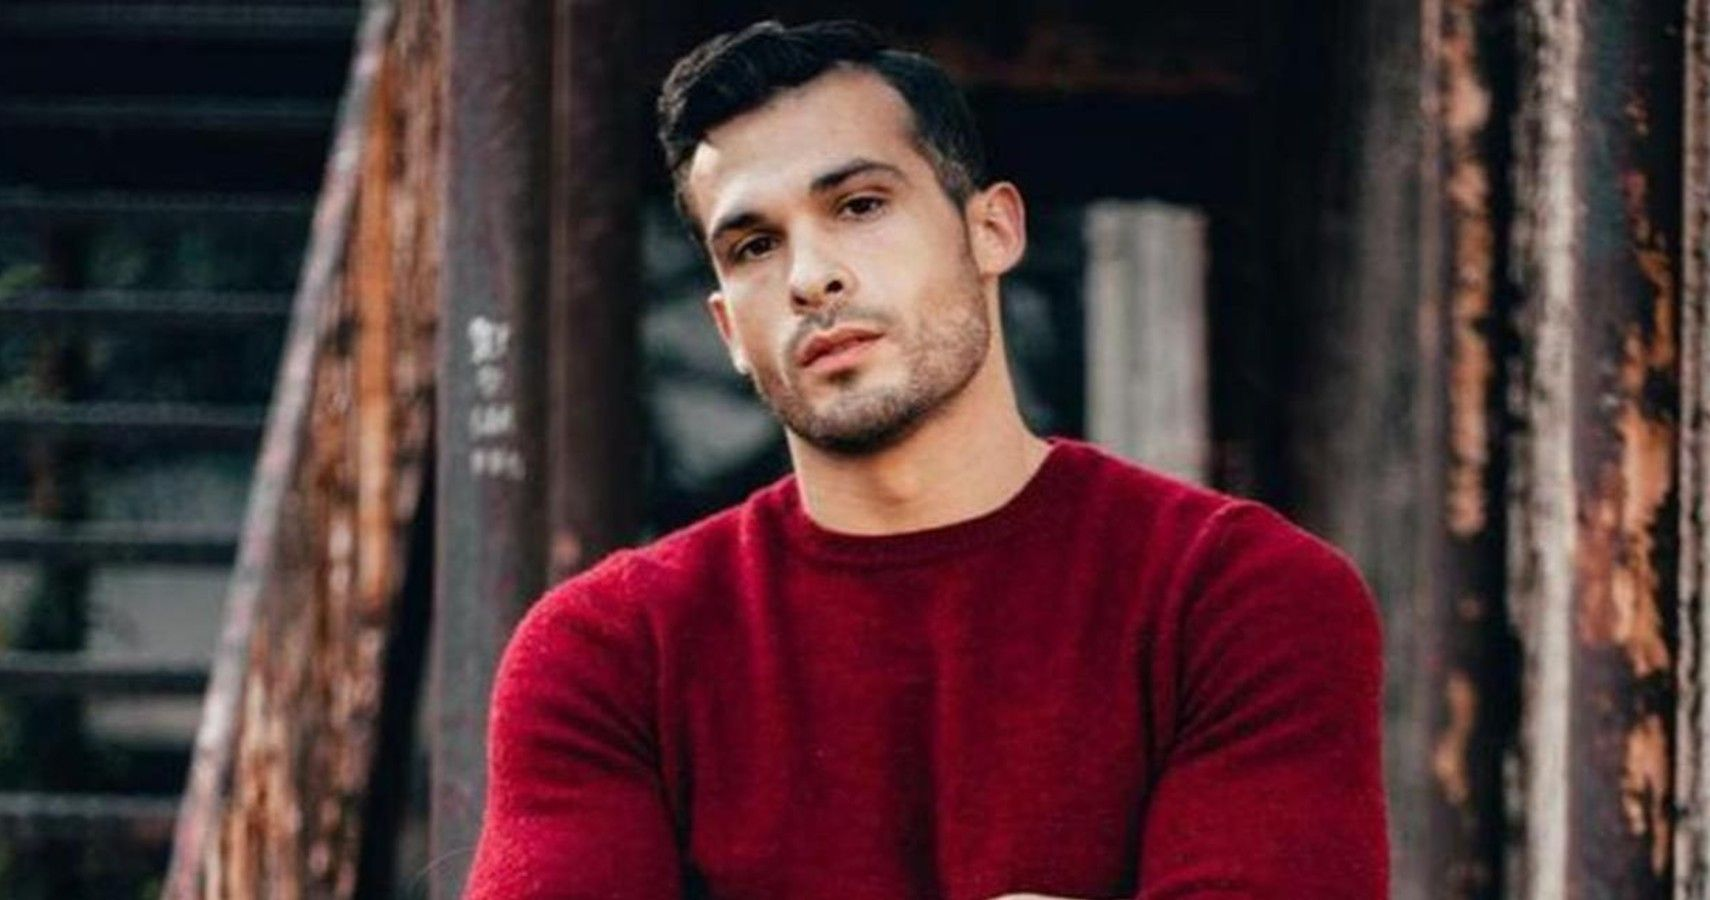 The Bachelorette: What to Know About Villain Yosef Aborady